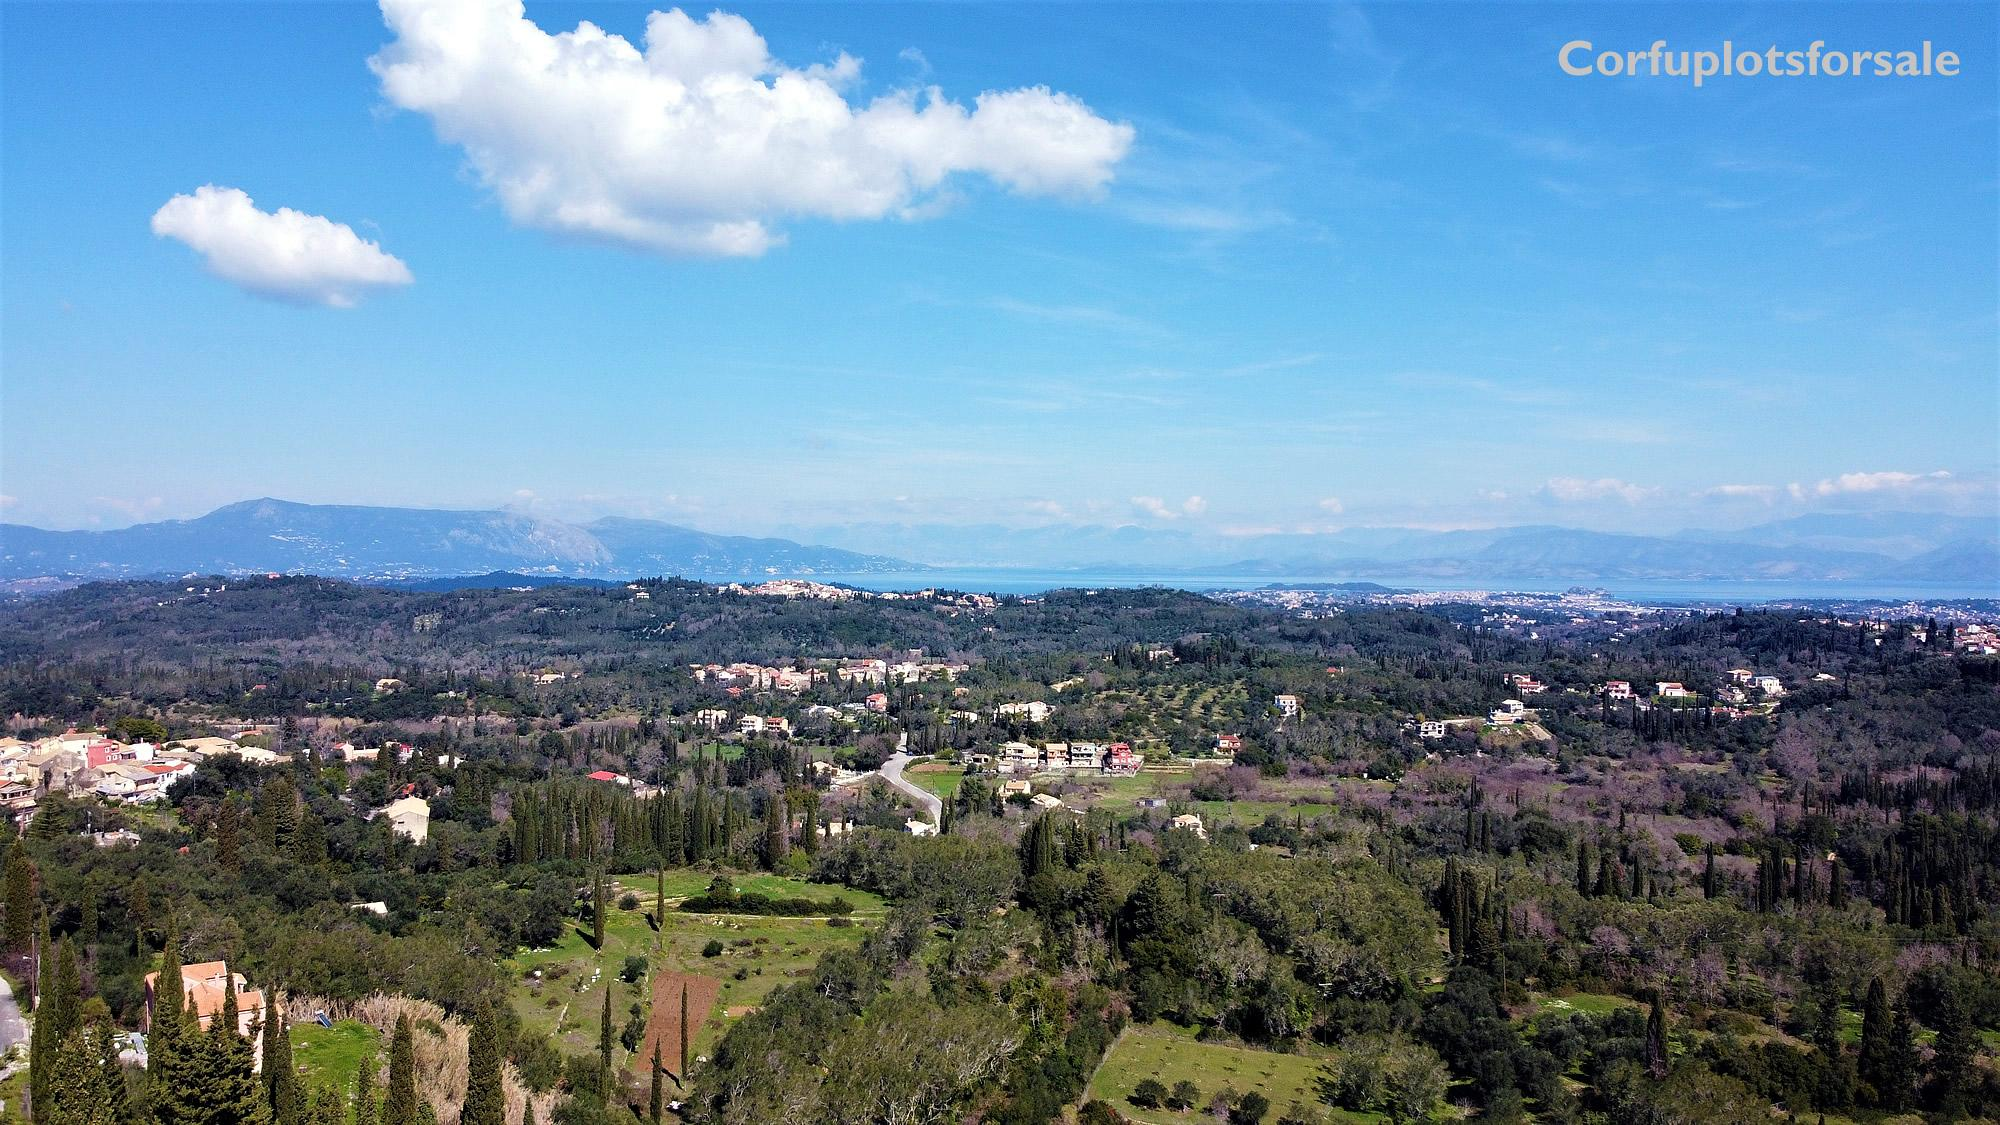 An interesting land with view of Corfu City and Ionian sea